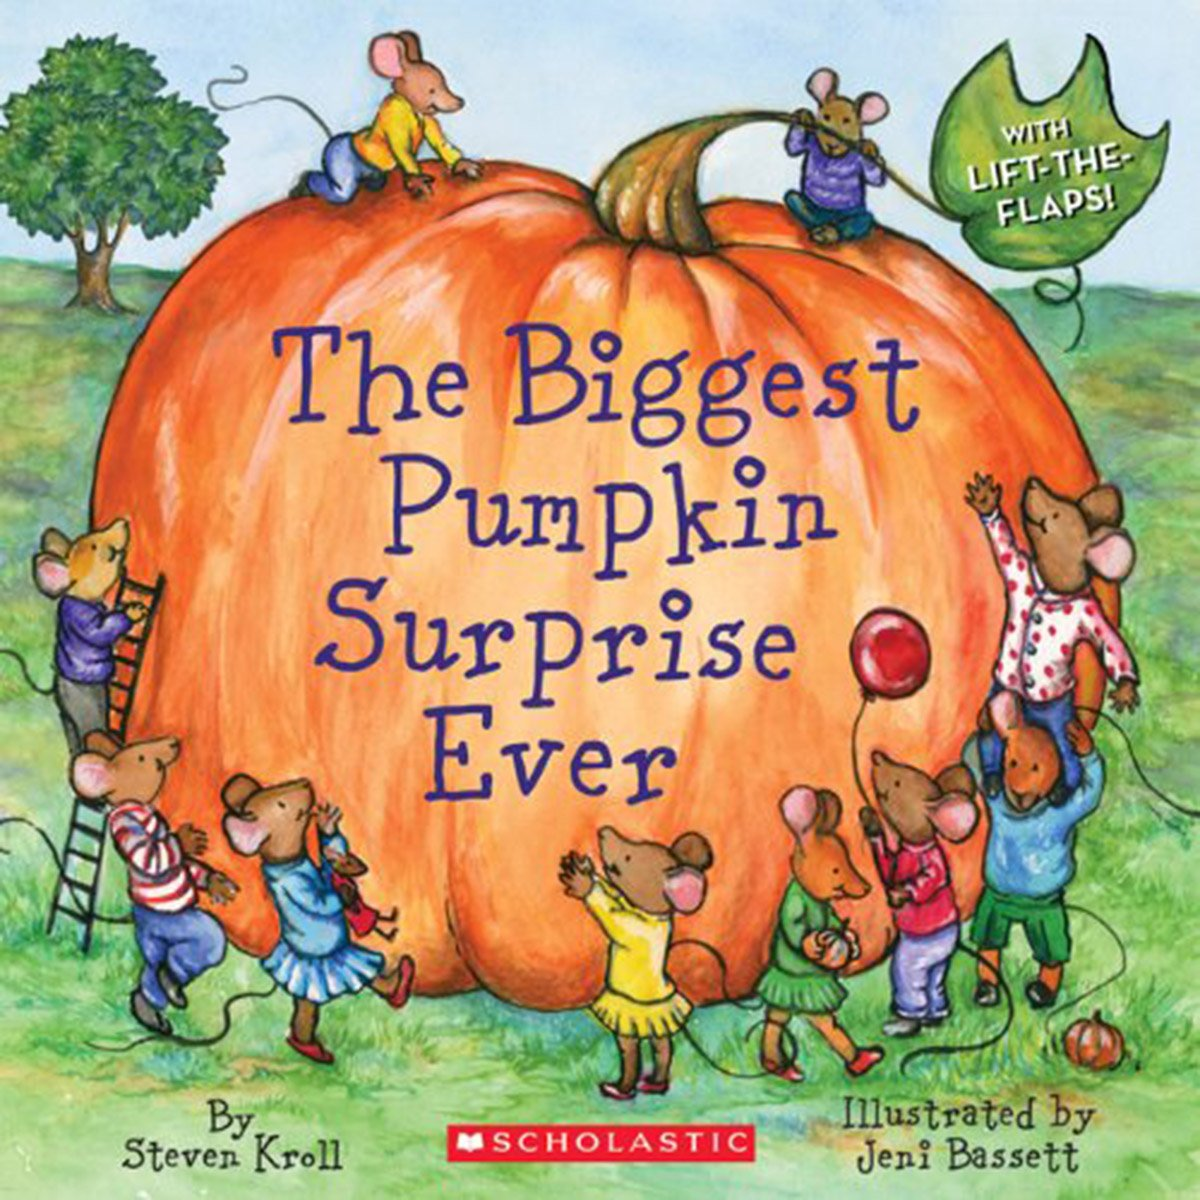 The Biggest Pumpkin Surprise Ever ,Fall books for kids